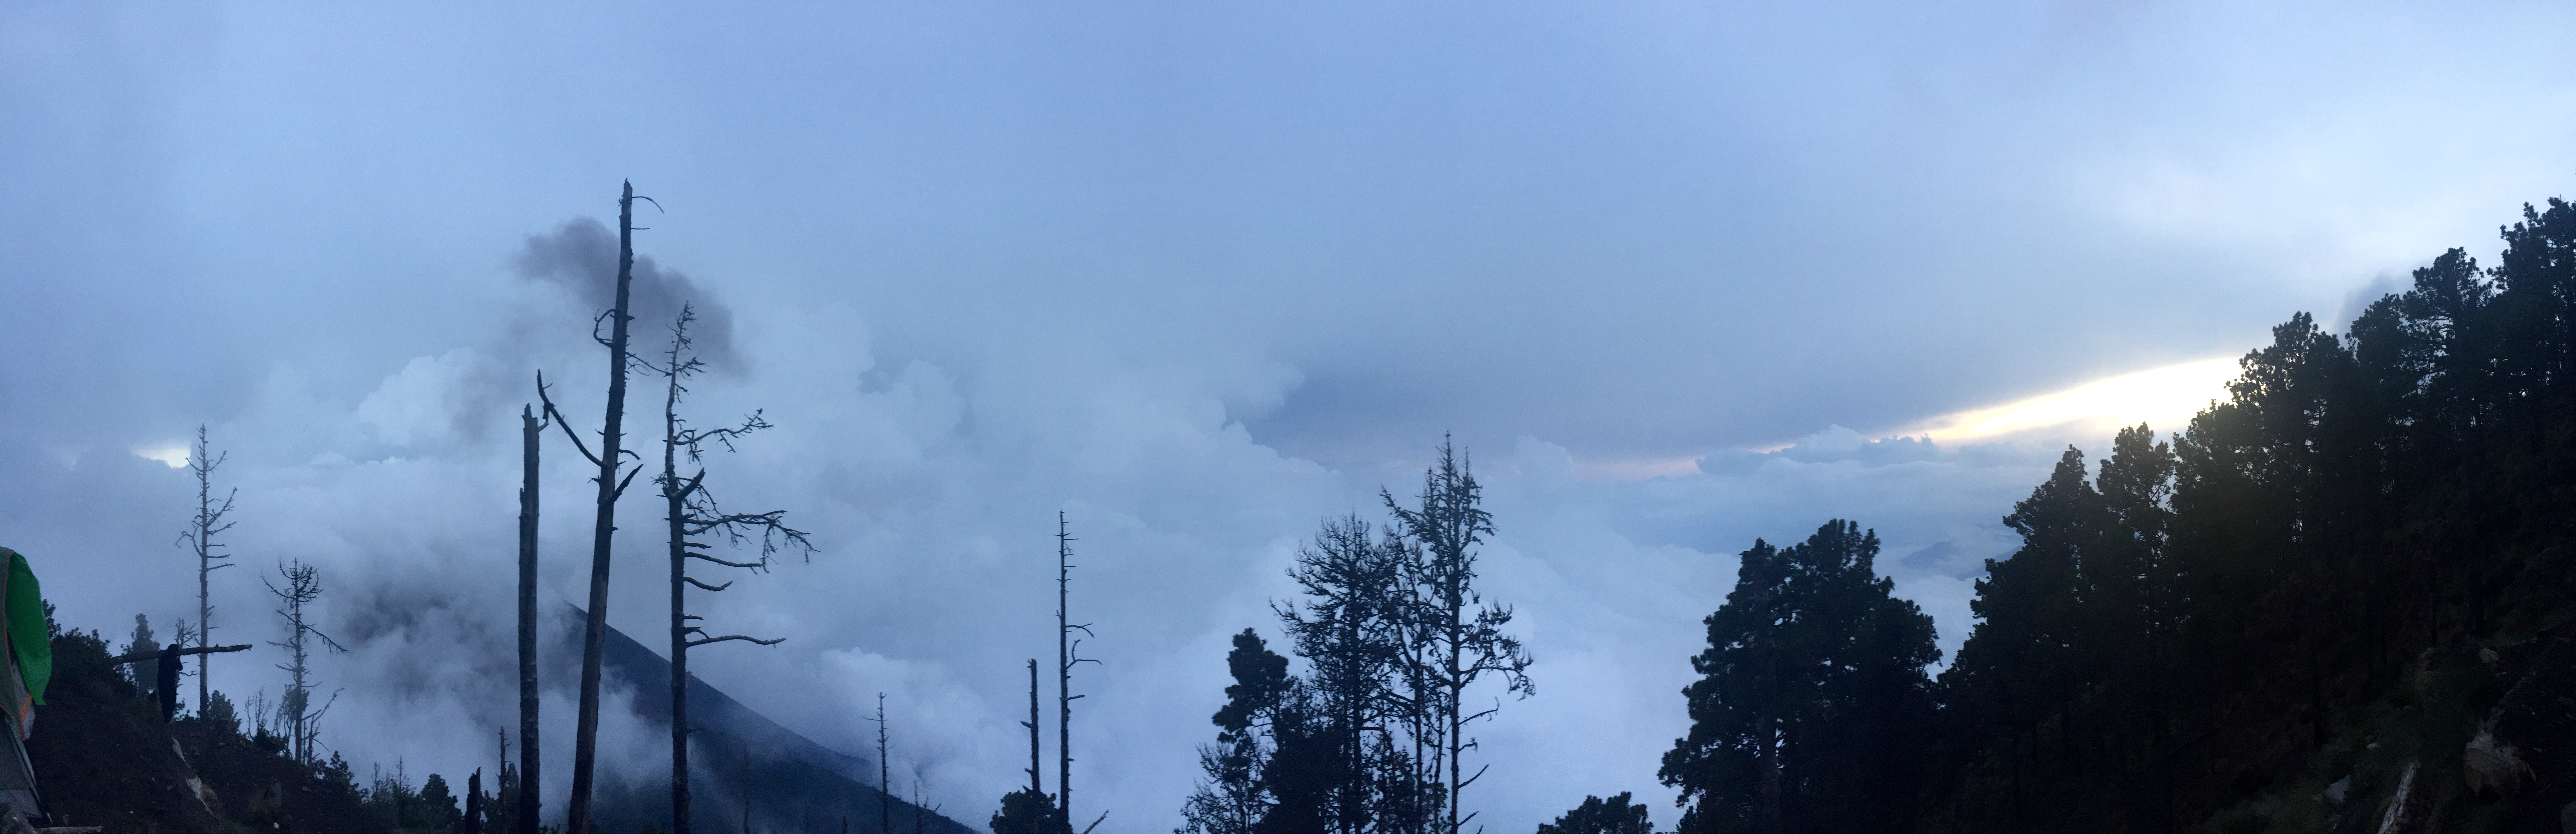 Ash mixed with cloud cover in the evening seen from basecamp.